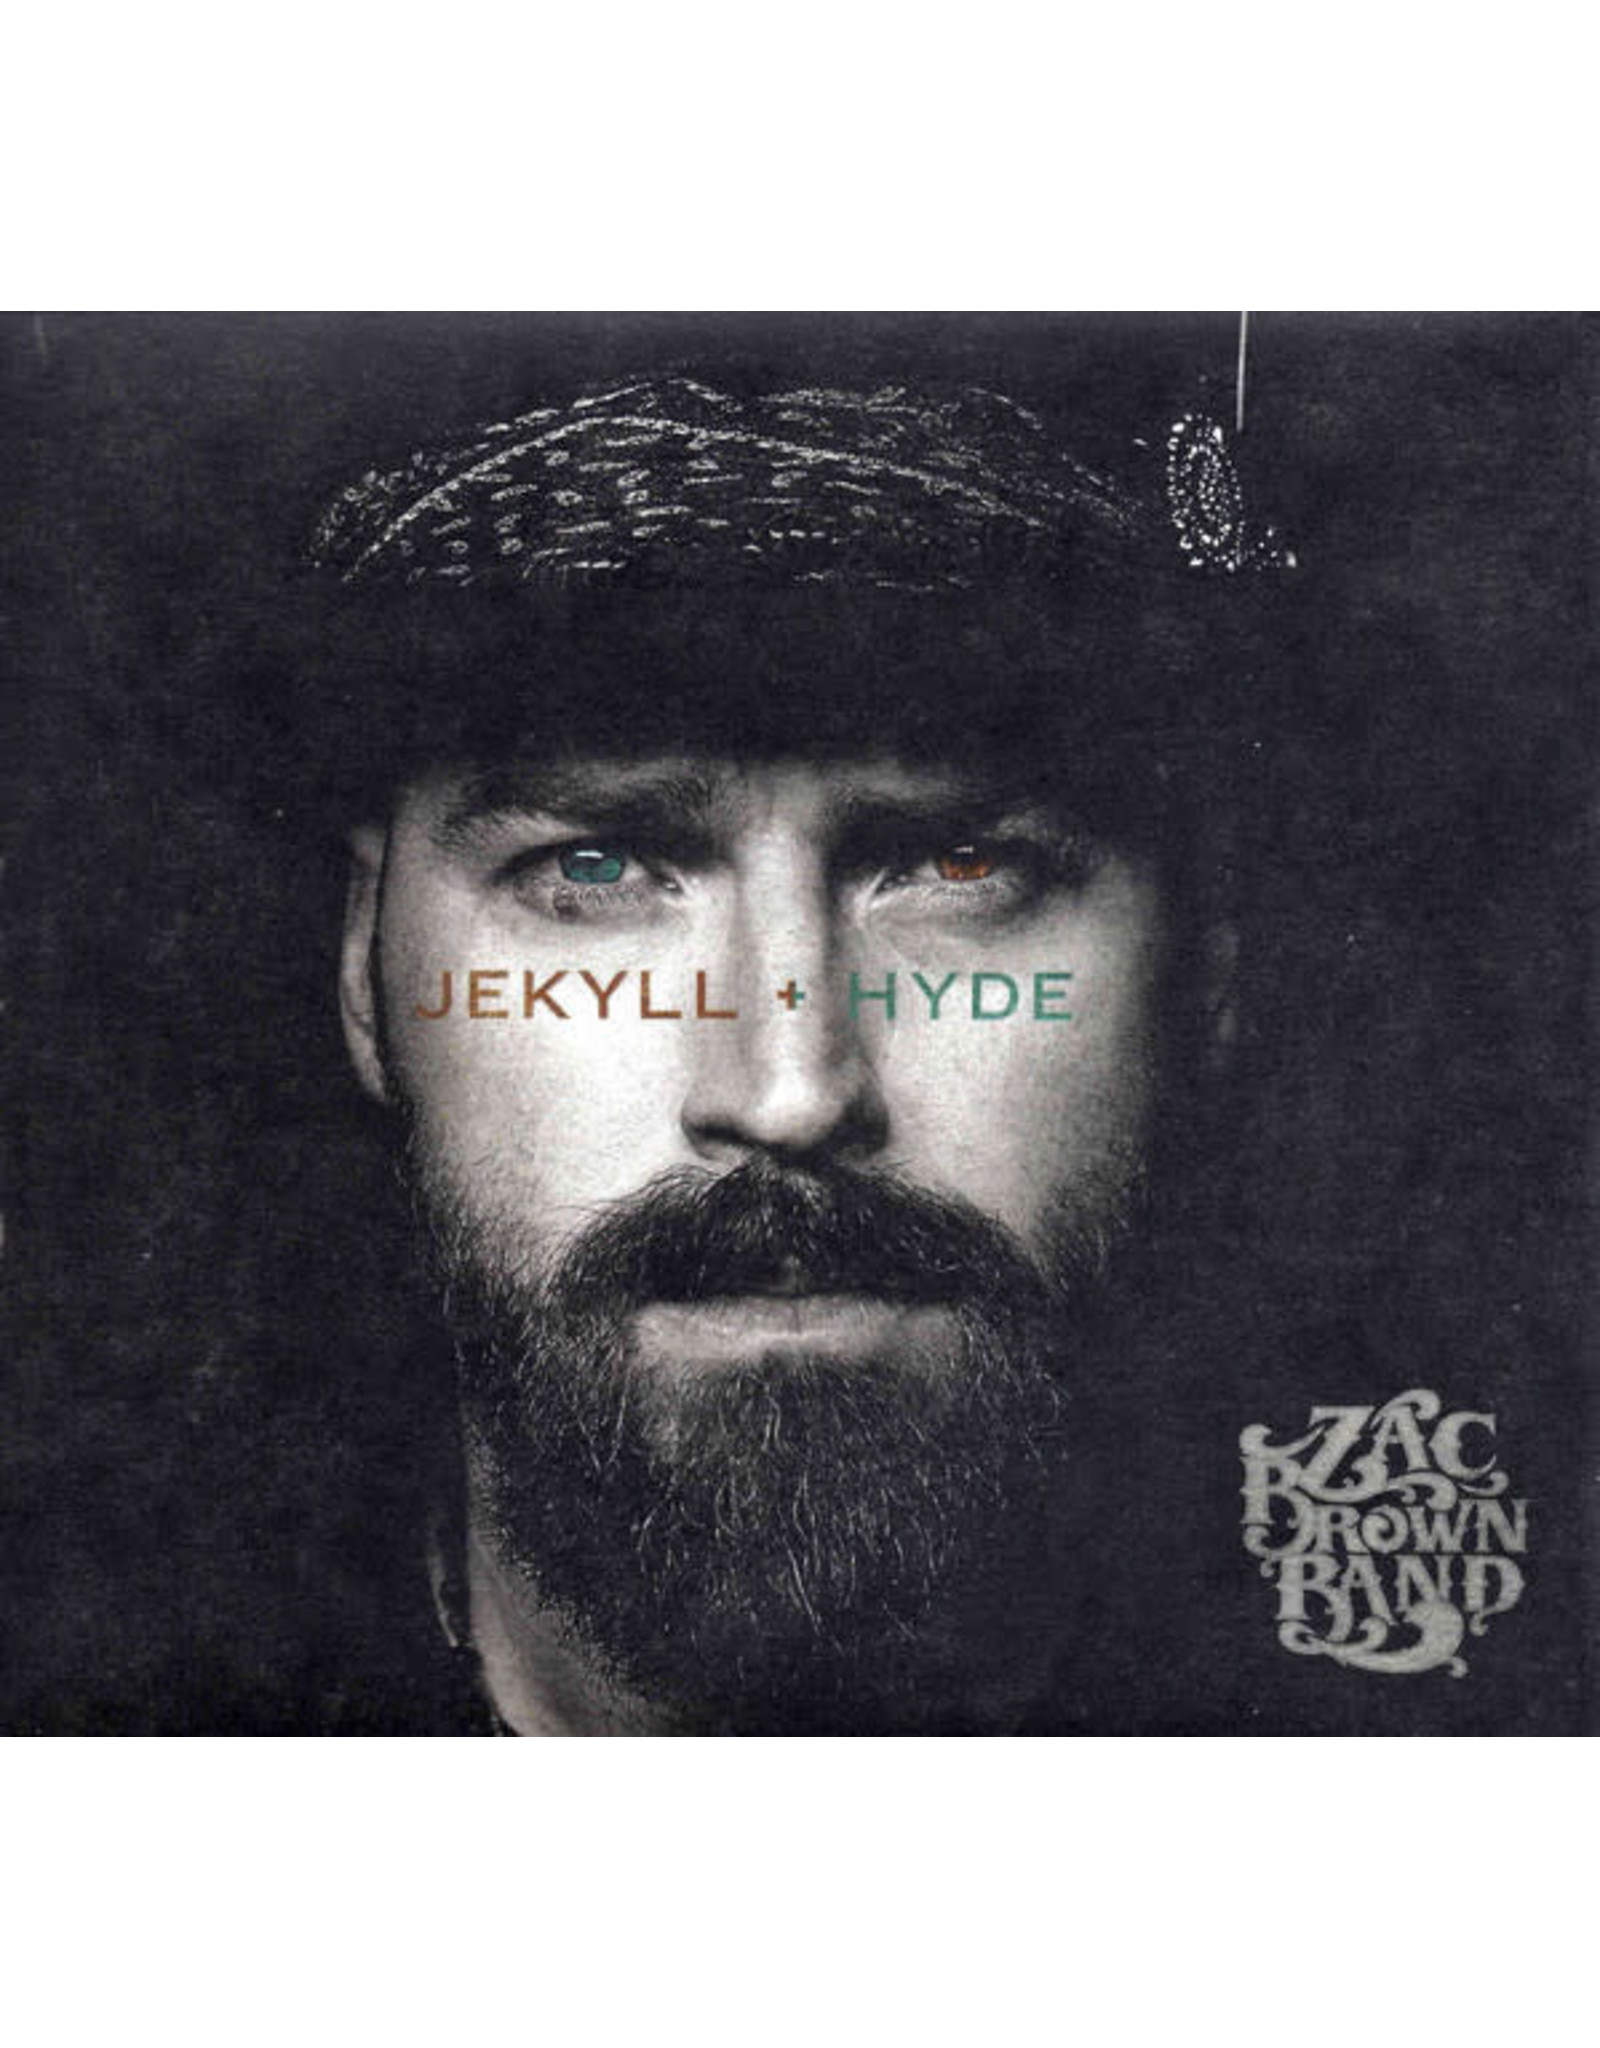 Brown, Zac, Band - Jekyll + Hyde CD